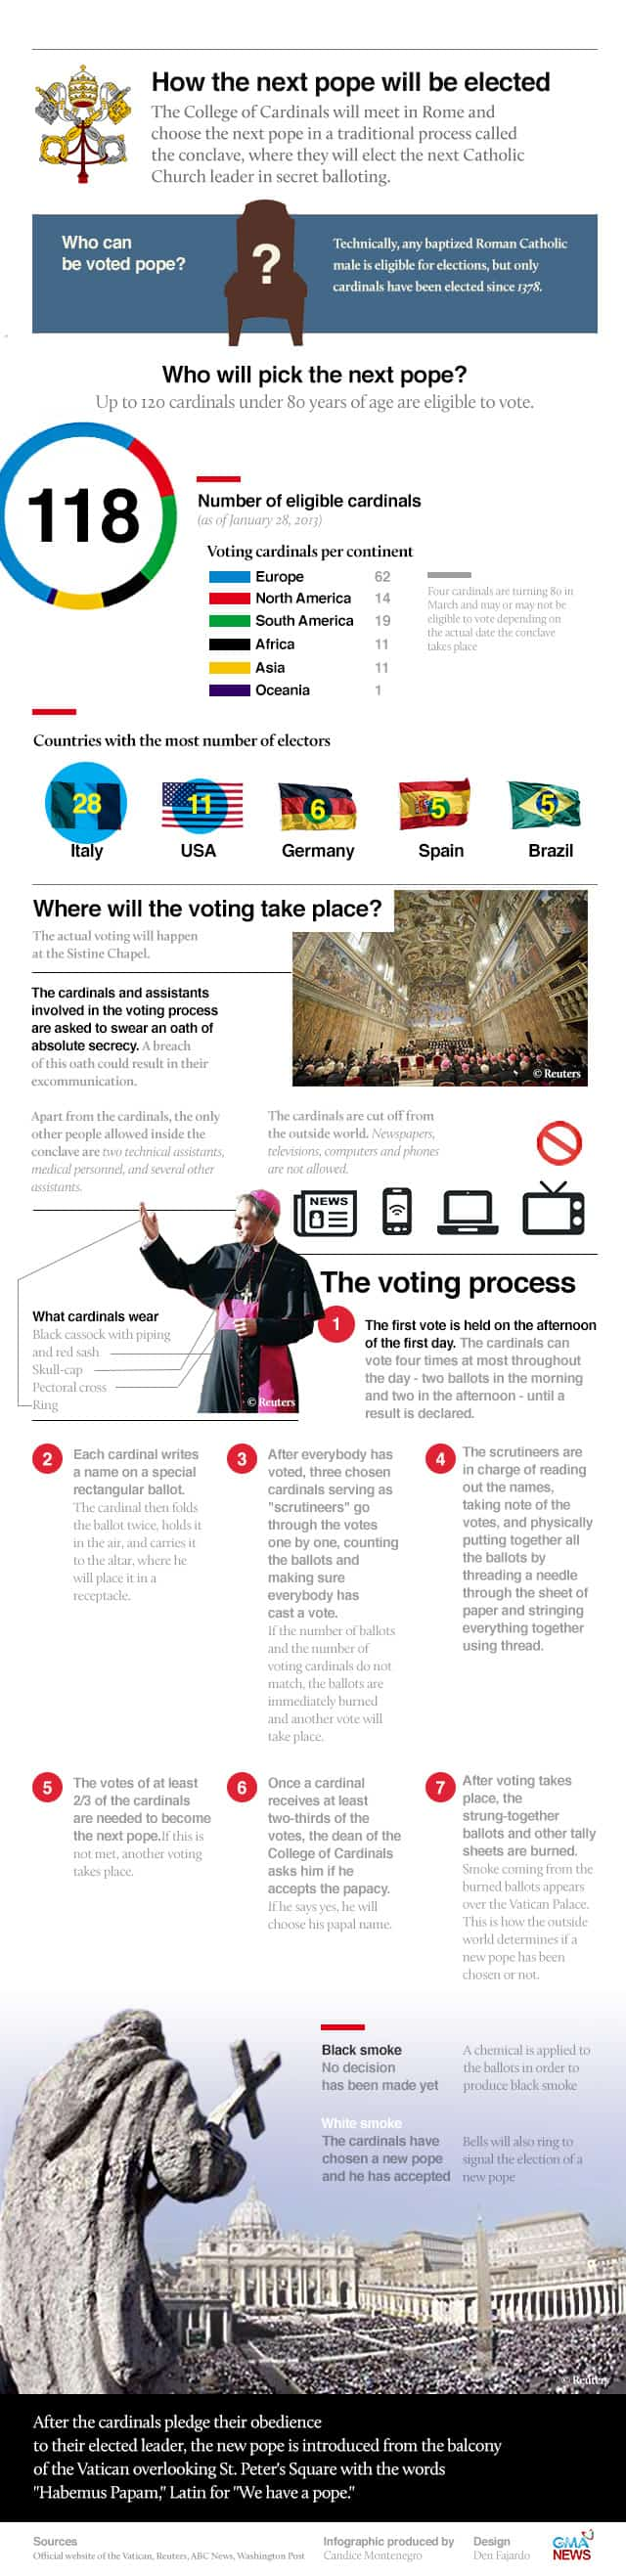 Election 2013: How the Pope is Decided